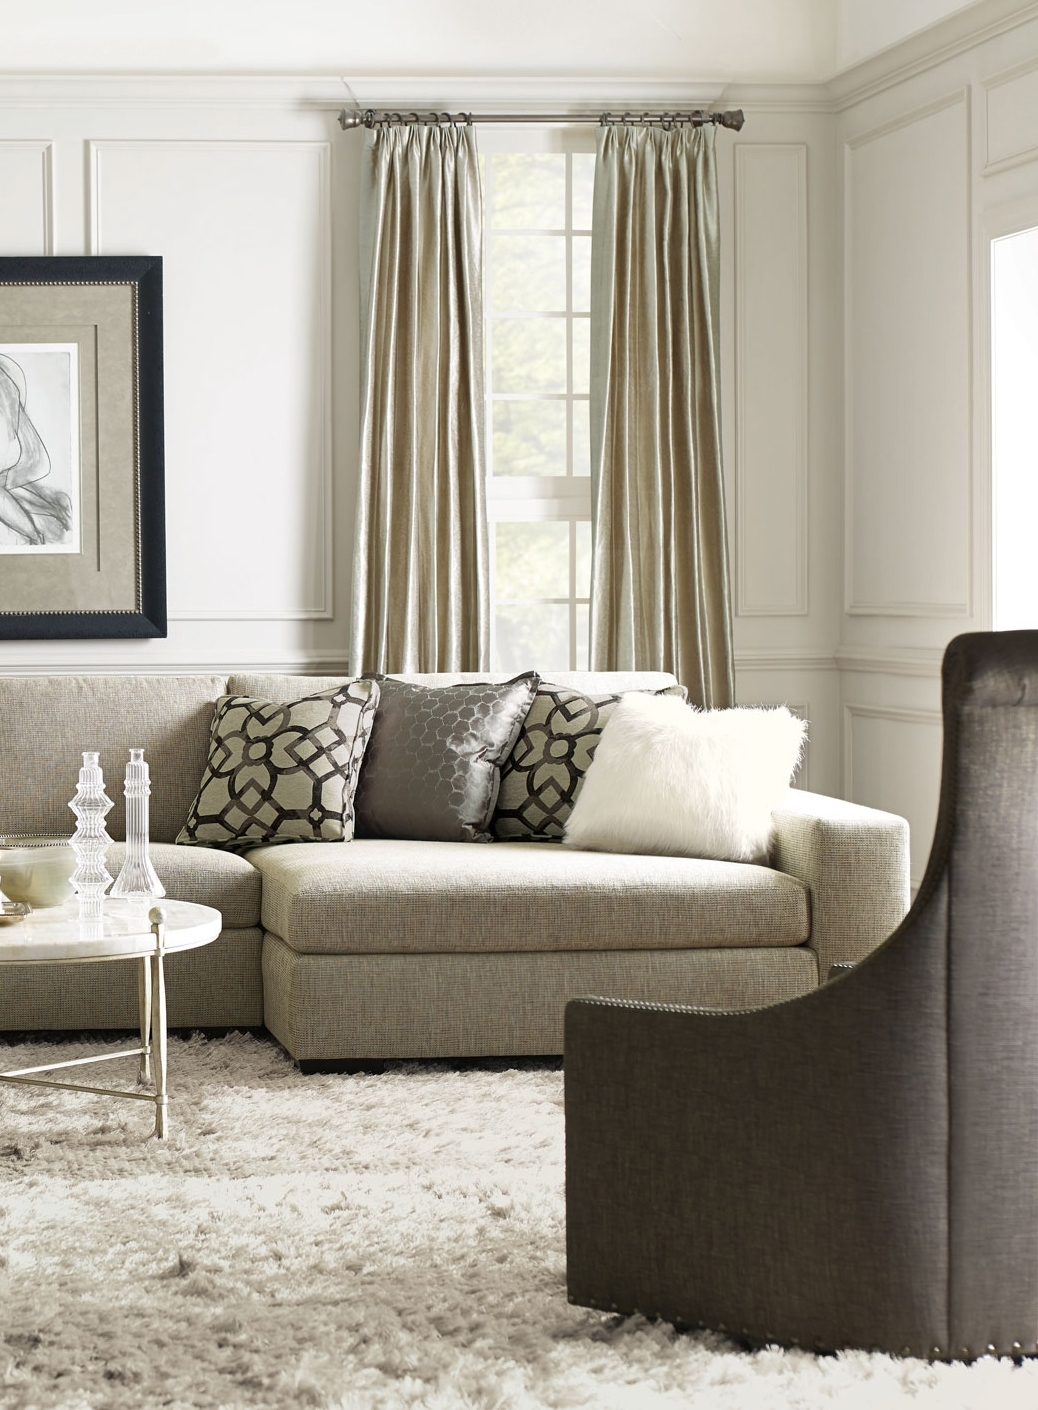 Bernhardt | Orlando Sectional Sofa, Maurice Swivel Chair, Clarion Within Orlando Sectional Sofas (View 10 of 10)